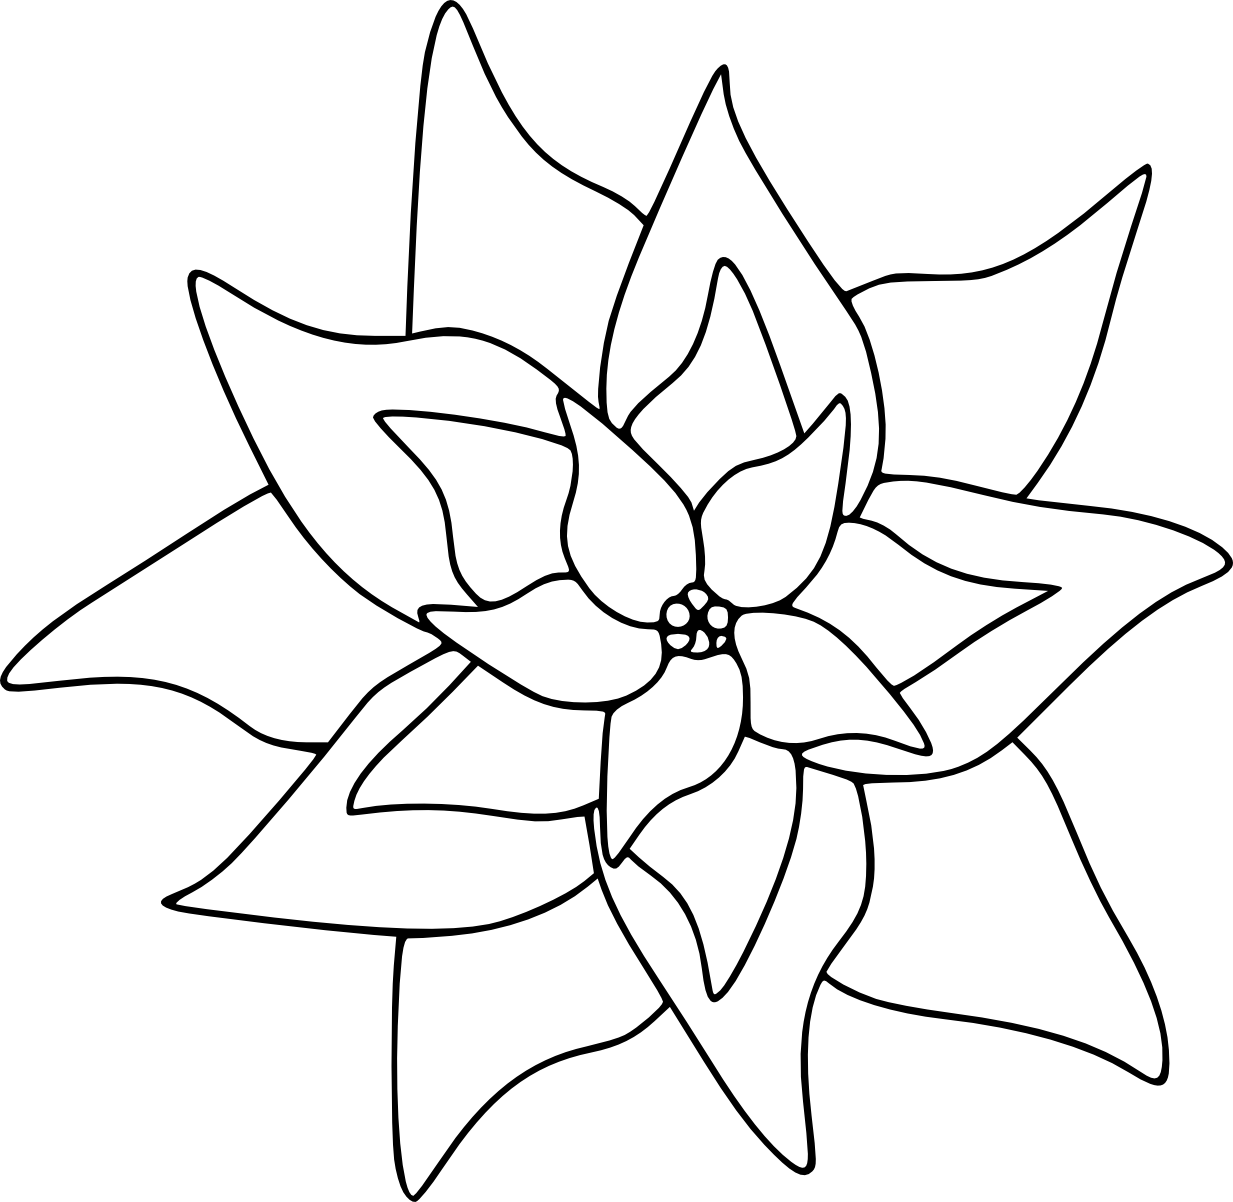 pointsettas coloring pages - photo#21